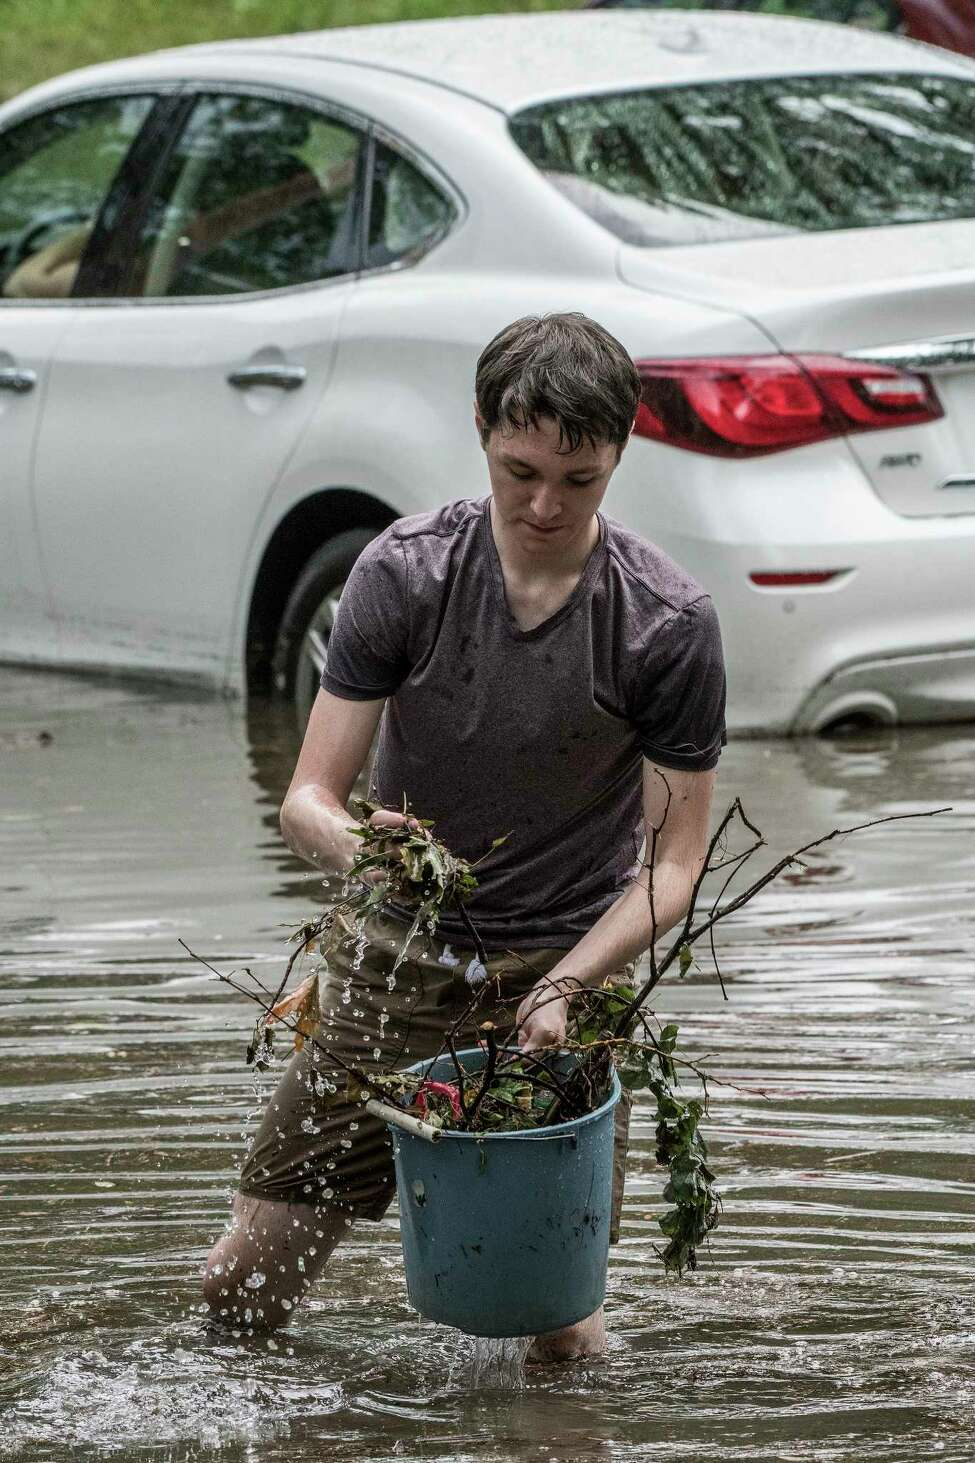 Justin Jasiewicz, 19, voluntarily clears obstructions from the sewer drains at the intersection of N. Pine St and Lancaster while a woman stranded in a car waits for a tow truck. Thursday July 5, 2018 in Albany, N.Y. (Skip Dickstein/Times Union)